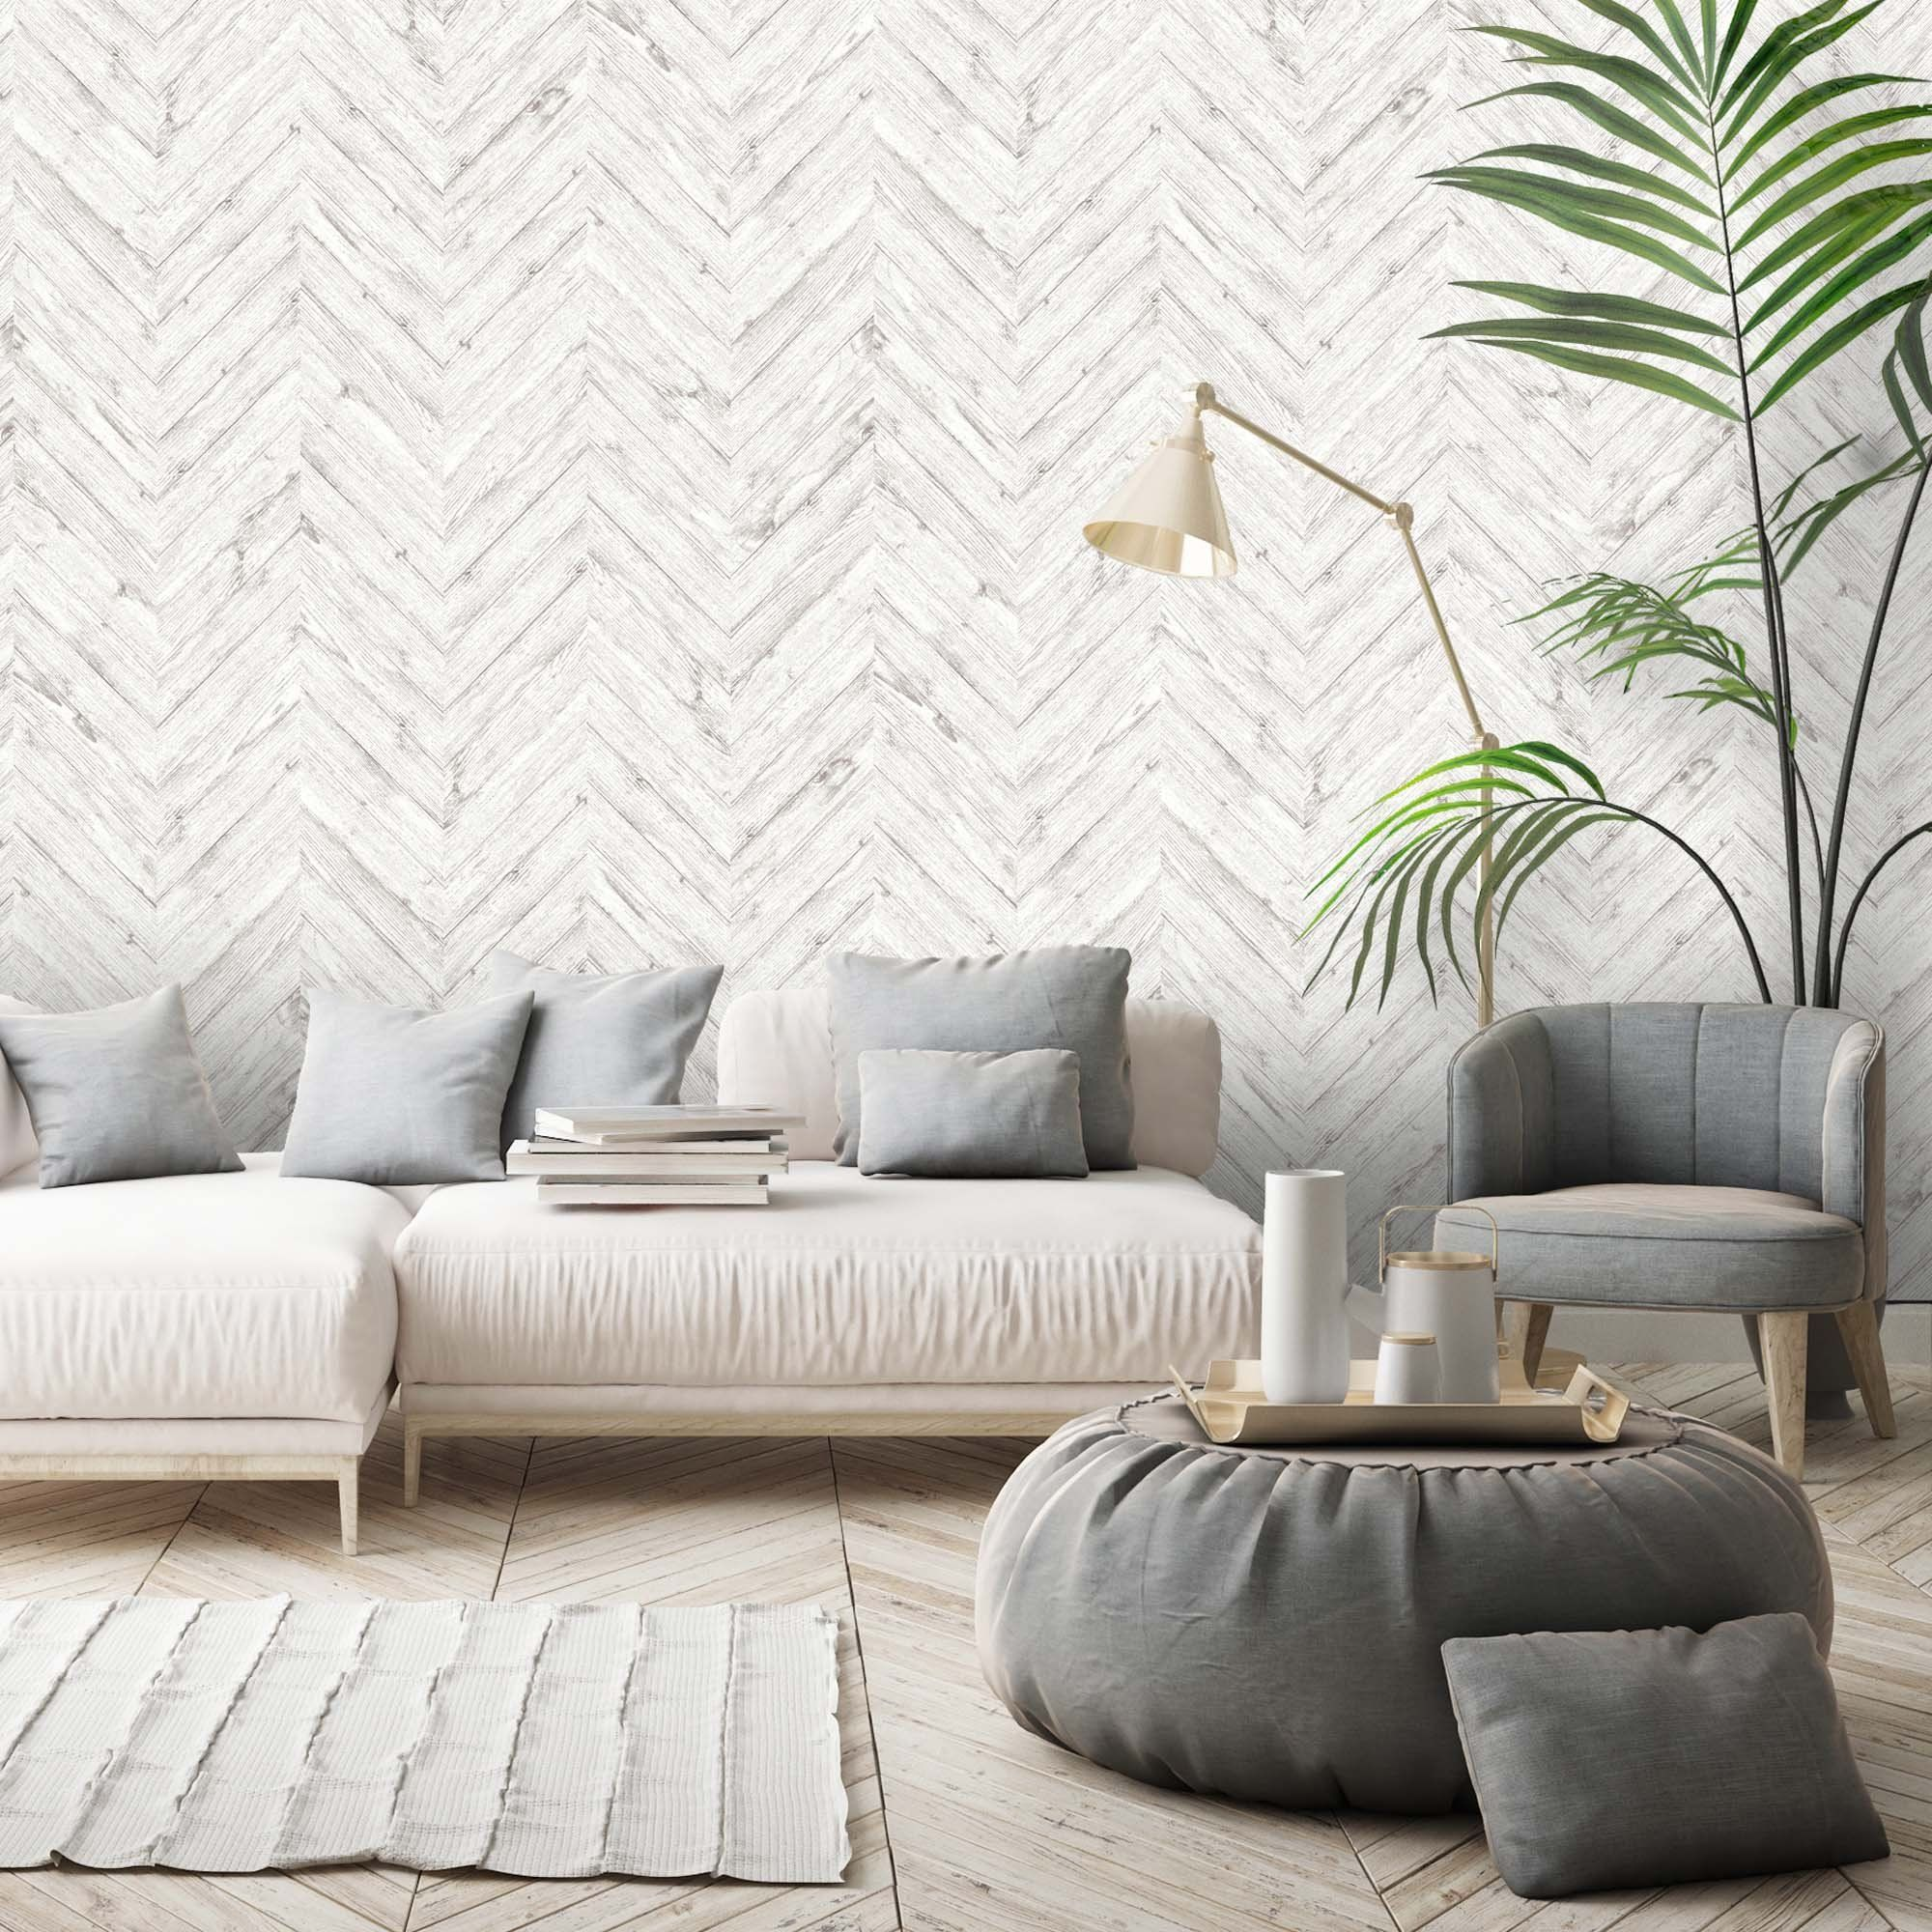 Painted White Chevron Wallpaper (With images) White